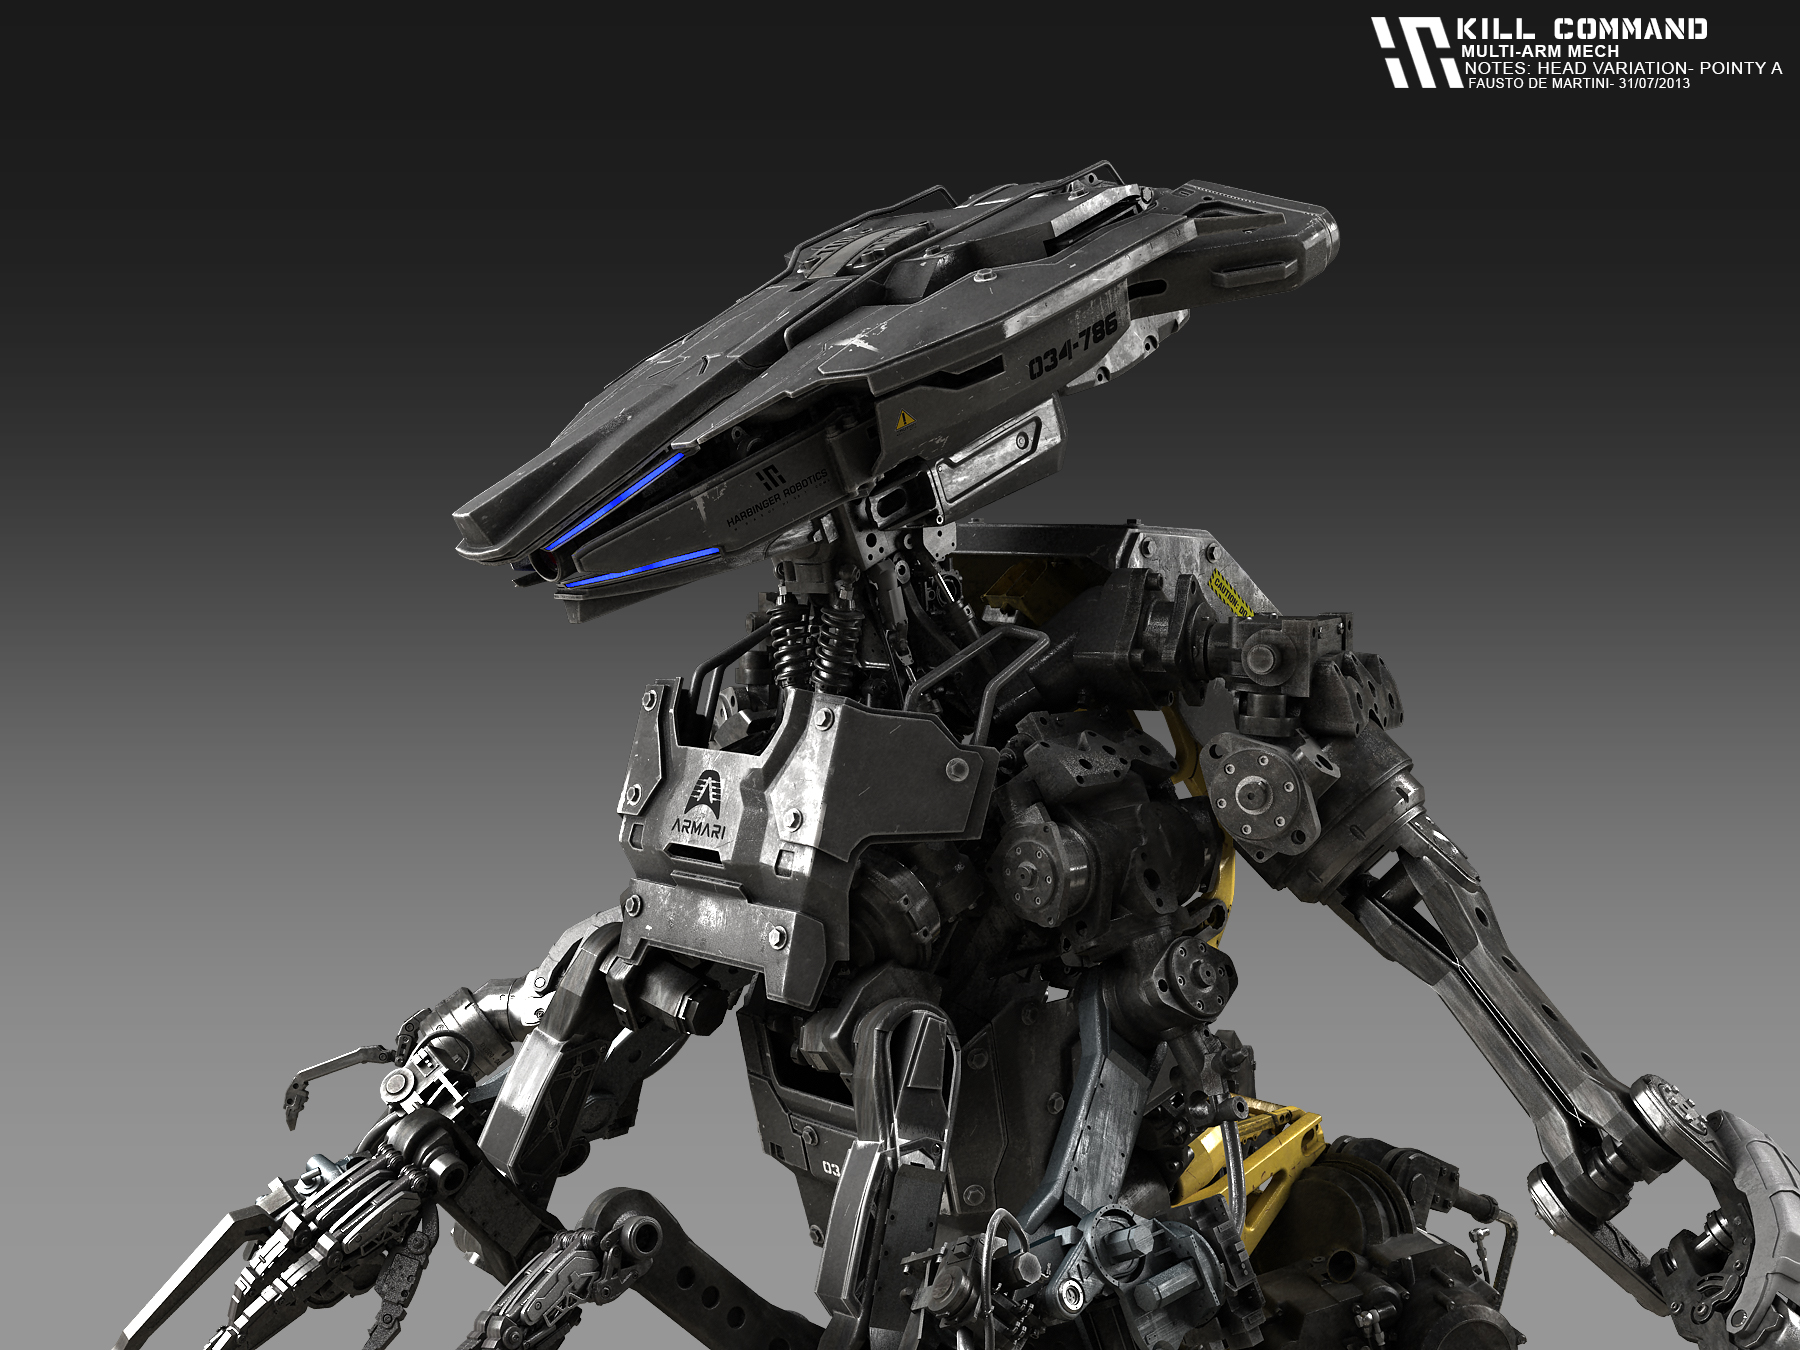 KILLCOMMAND_MultiArms_073113_HeadVariation02_FDM.jpg